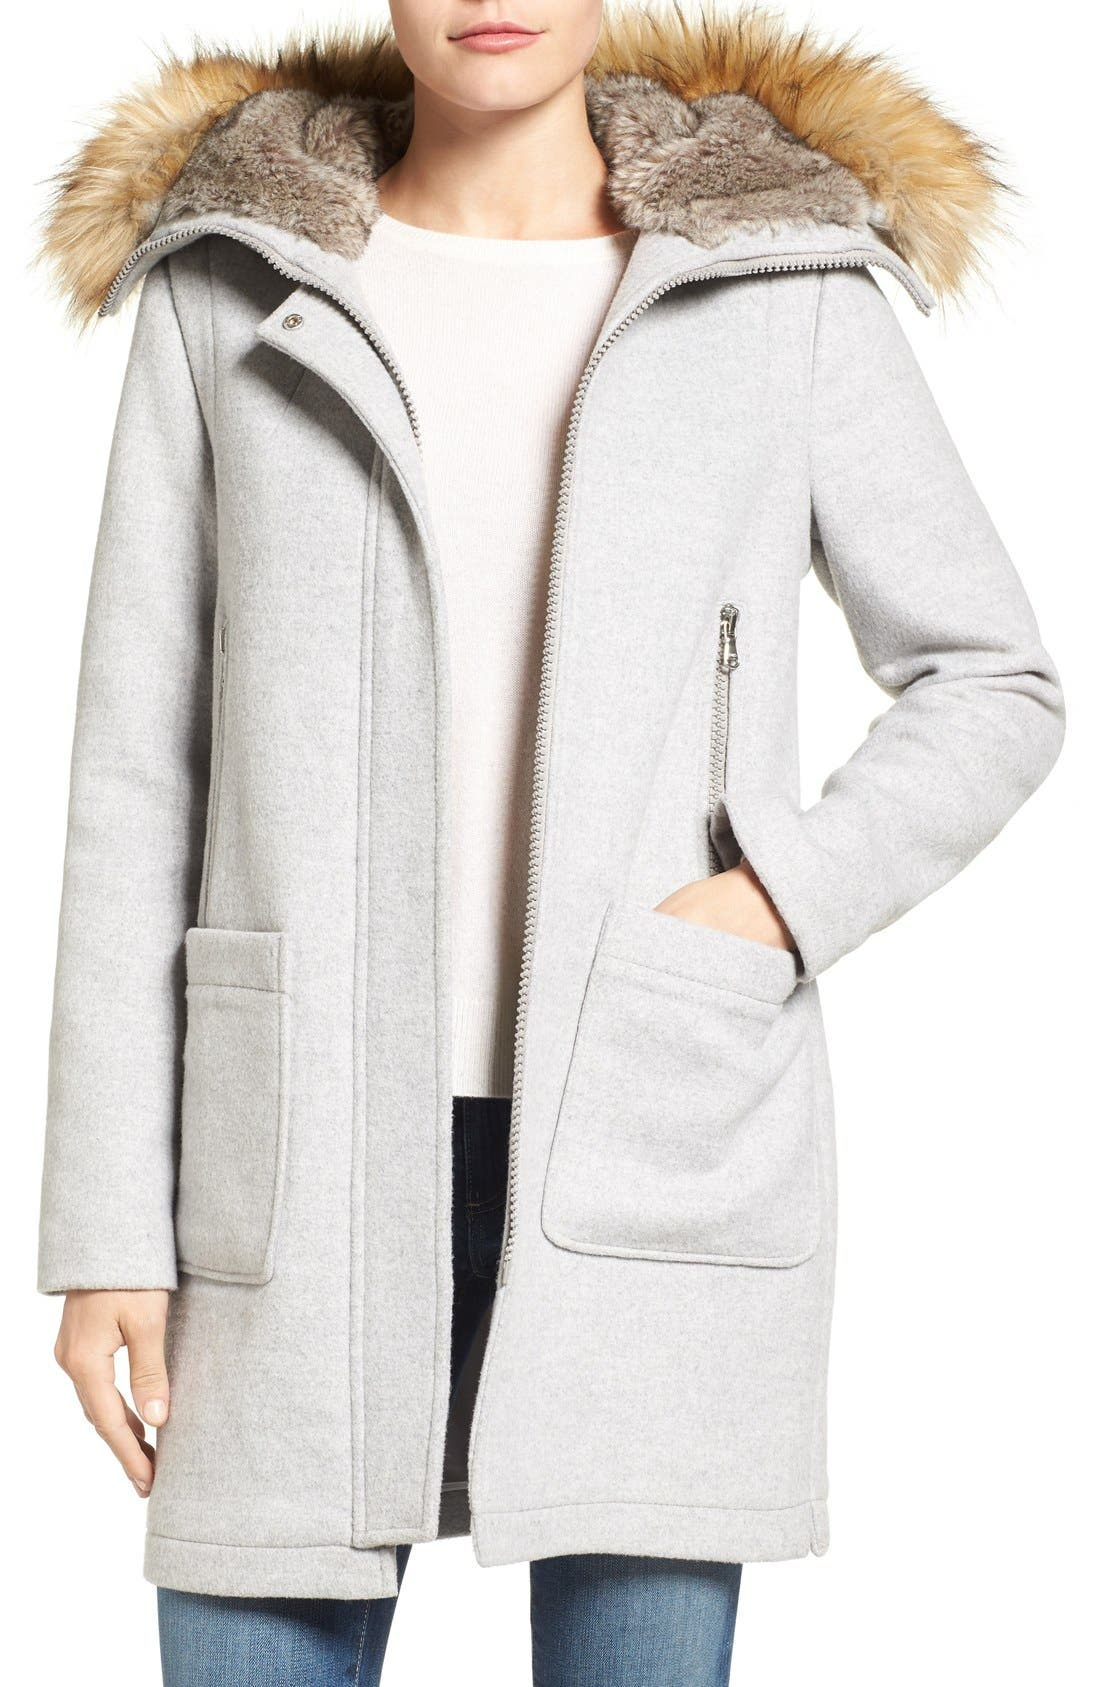 Main Image - Vince Camuto Wool Blend Duffle Coat with Faux Fur Trim Hood